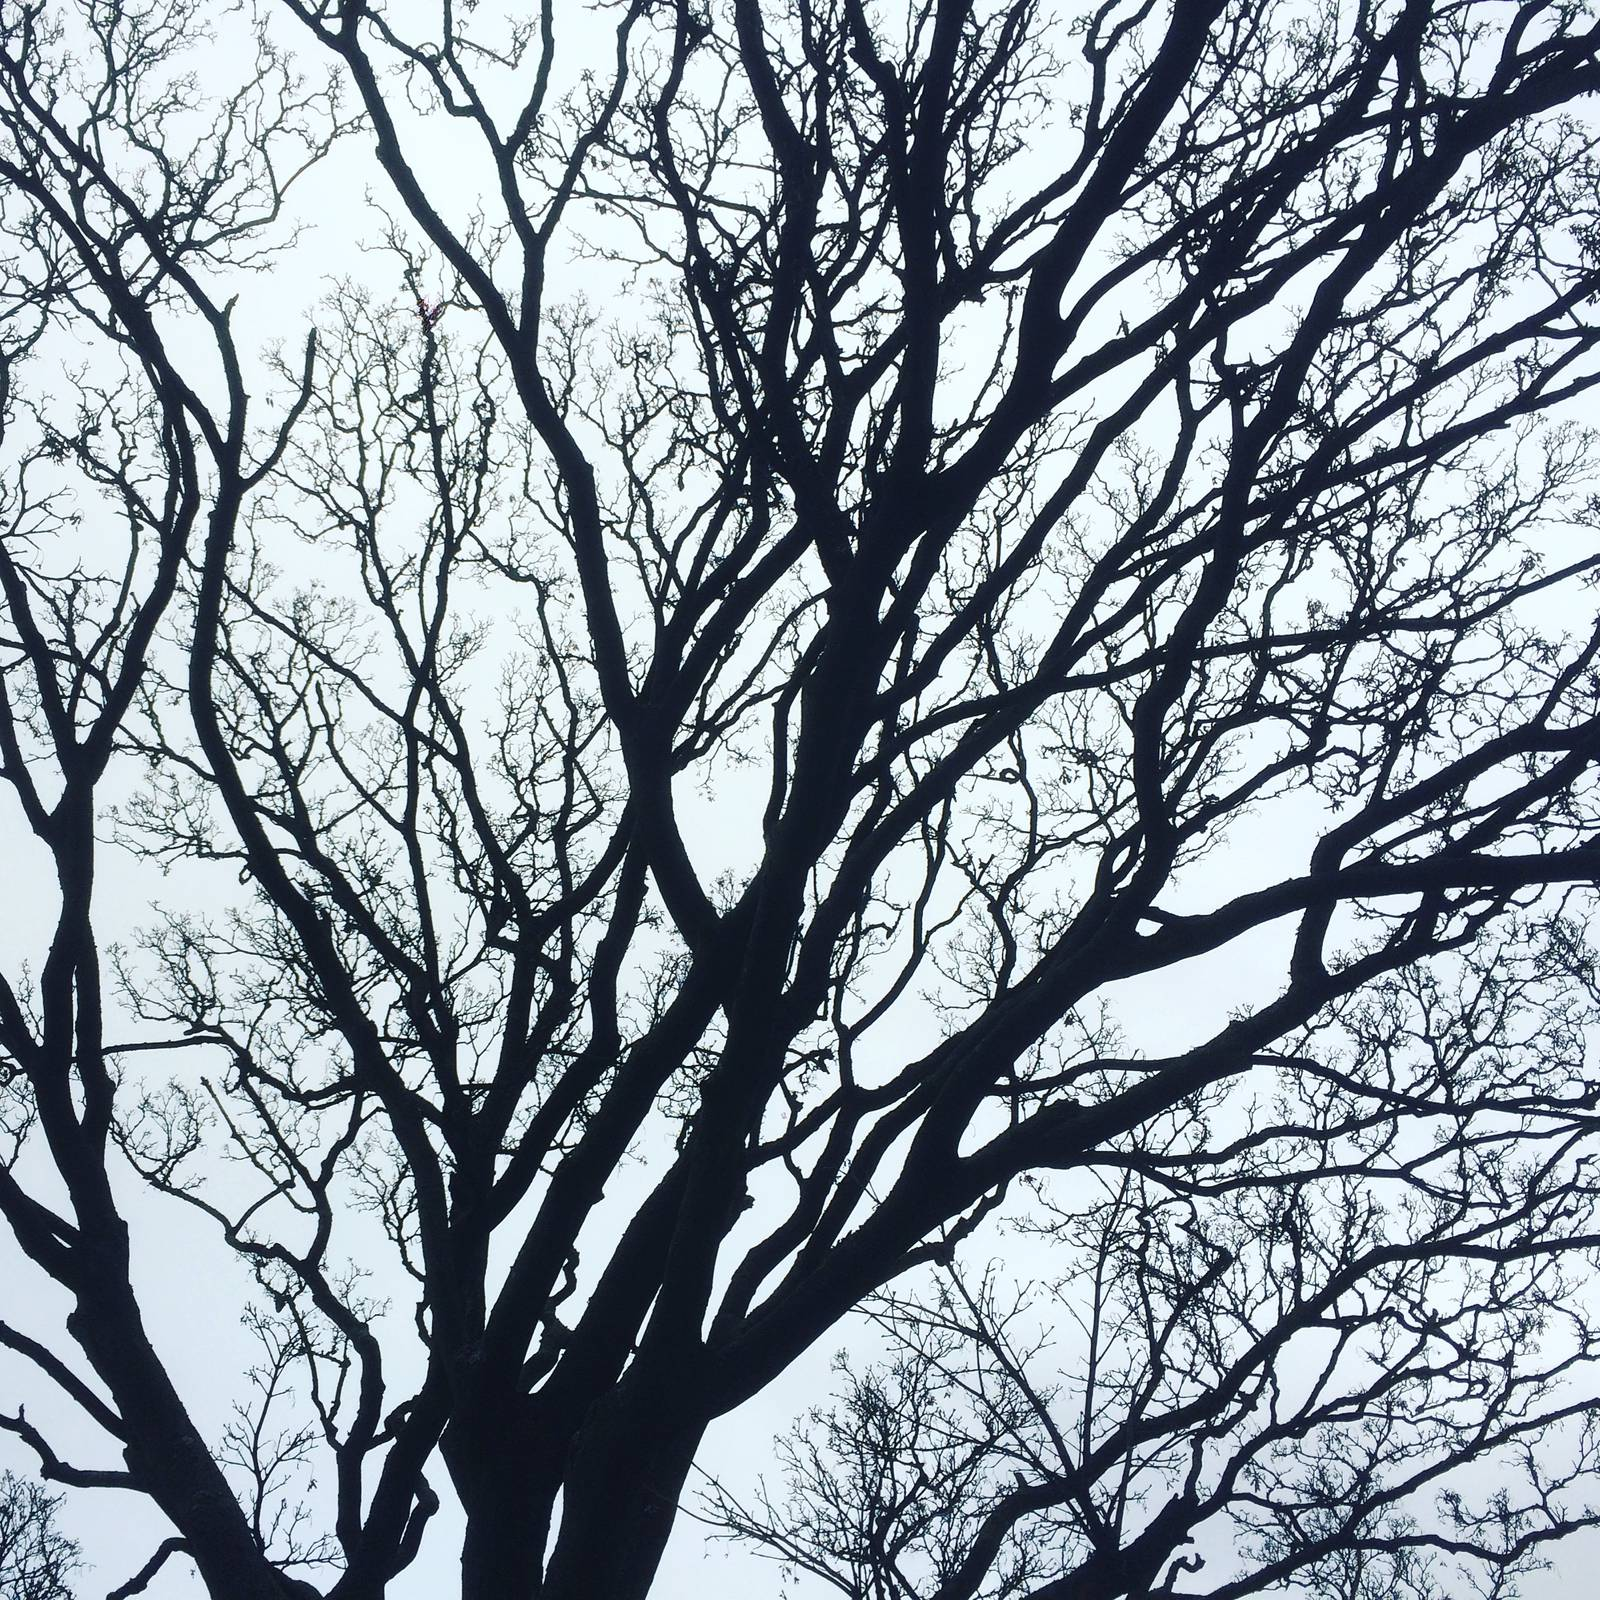 Winter tree, winter sky at Blackrock Park